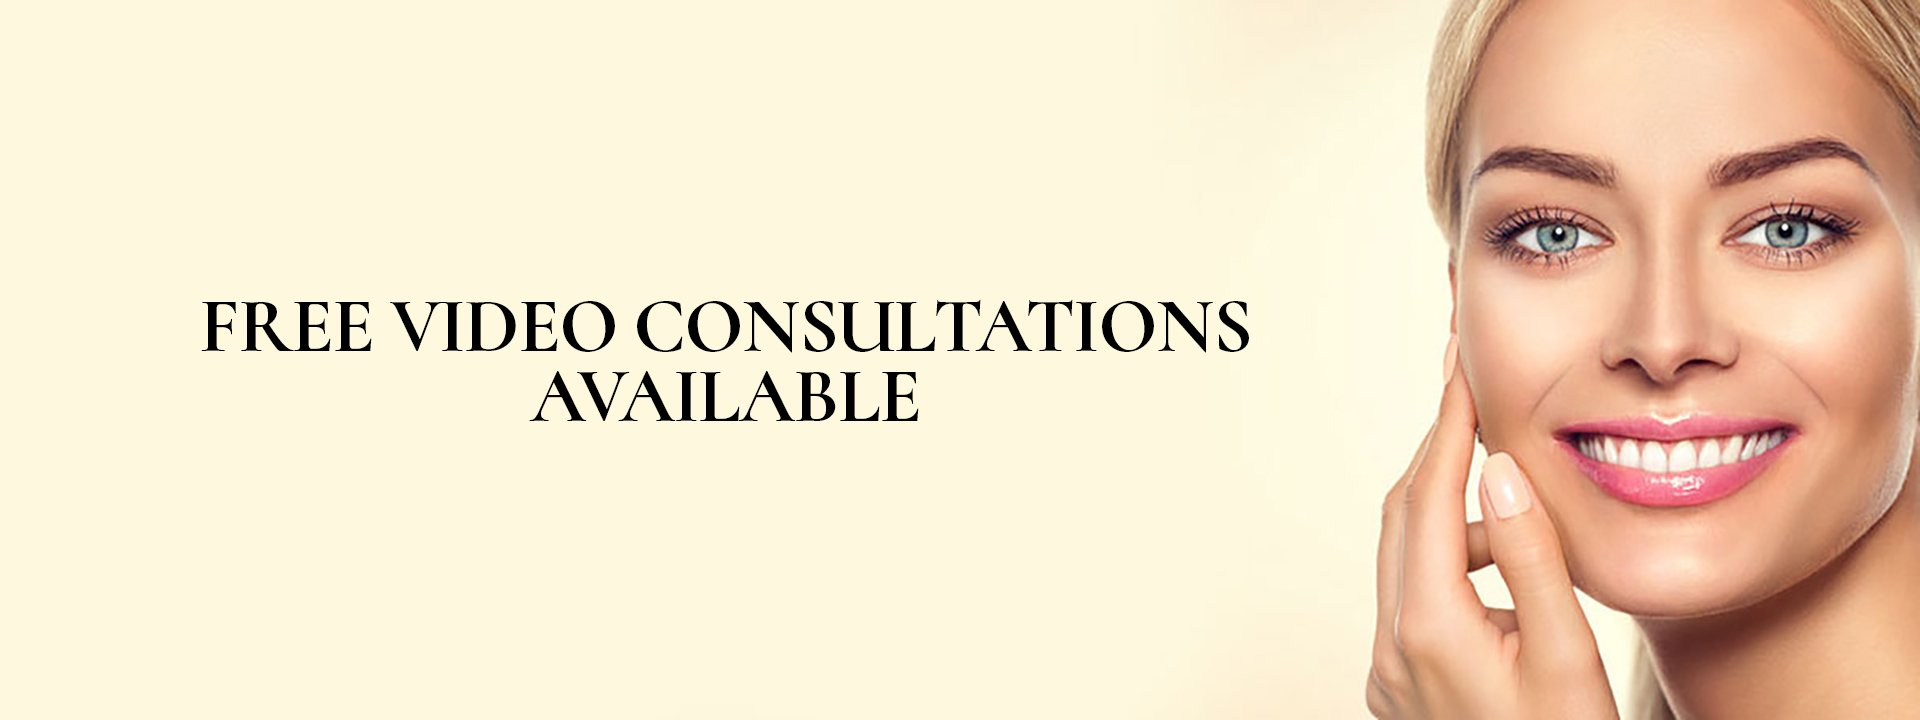 free Video Consultations Available at urban coiffeur hai salon in Wolverhampton